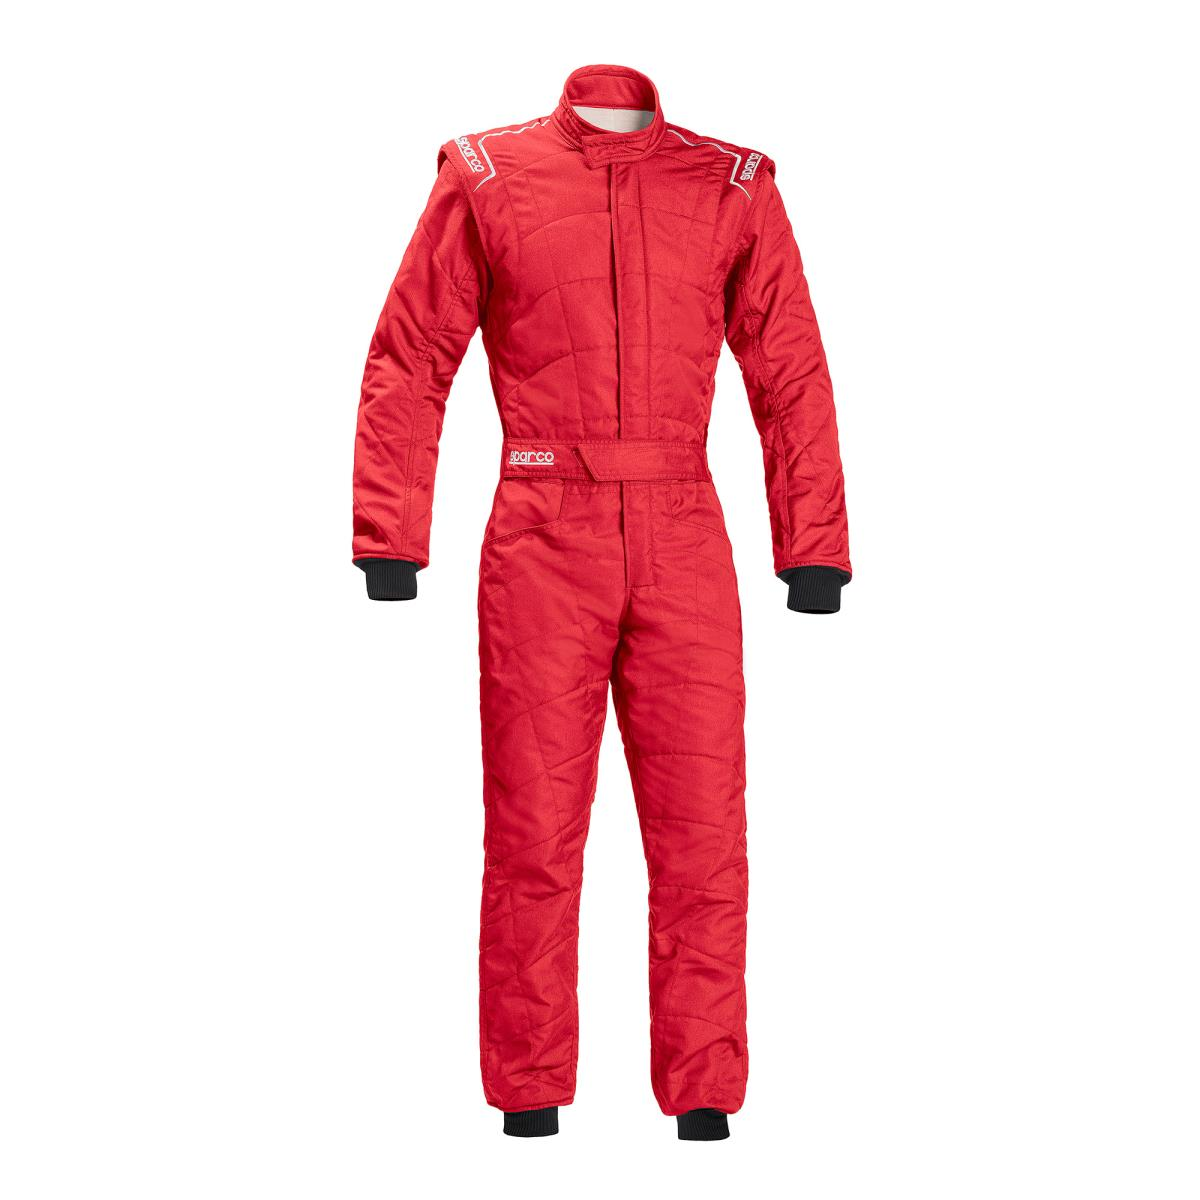 RENNOVERALL  SPARCO R548 SPRINT RS-2.1 T   Tg.52 FARBE ROT - 1